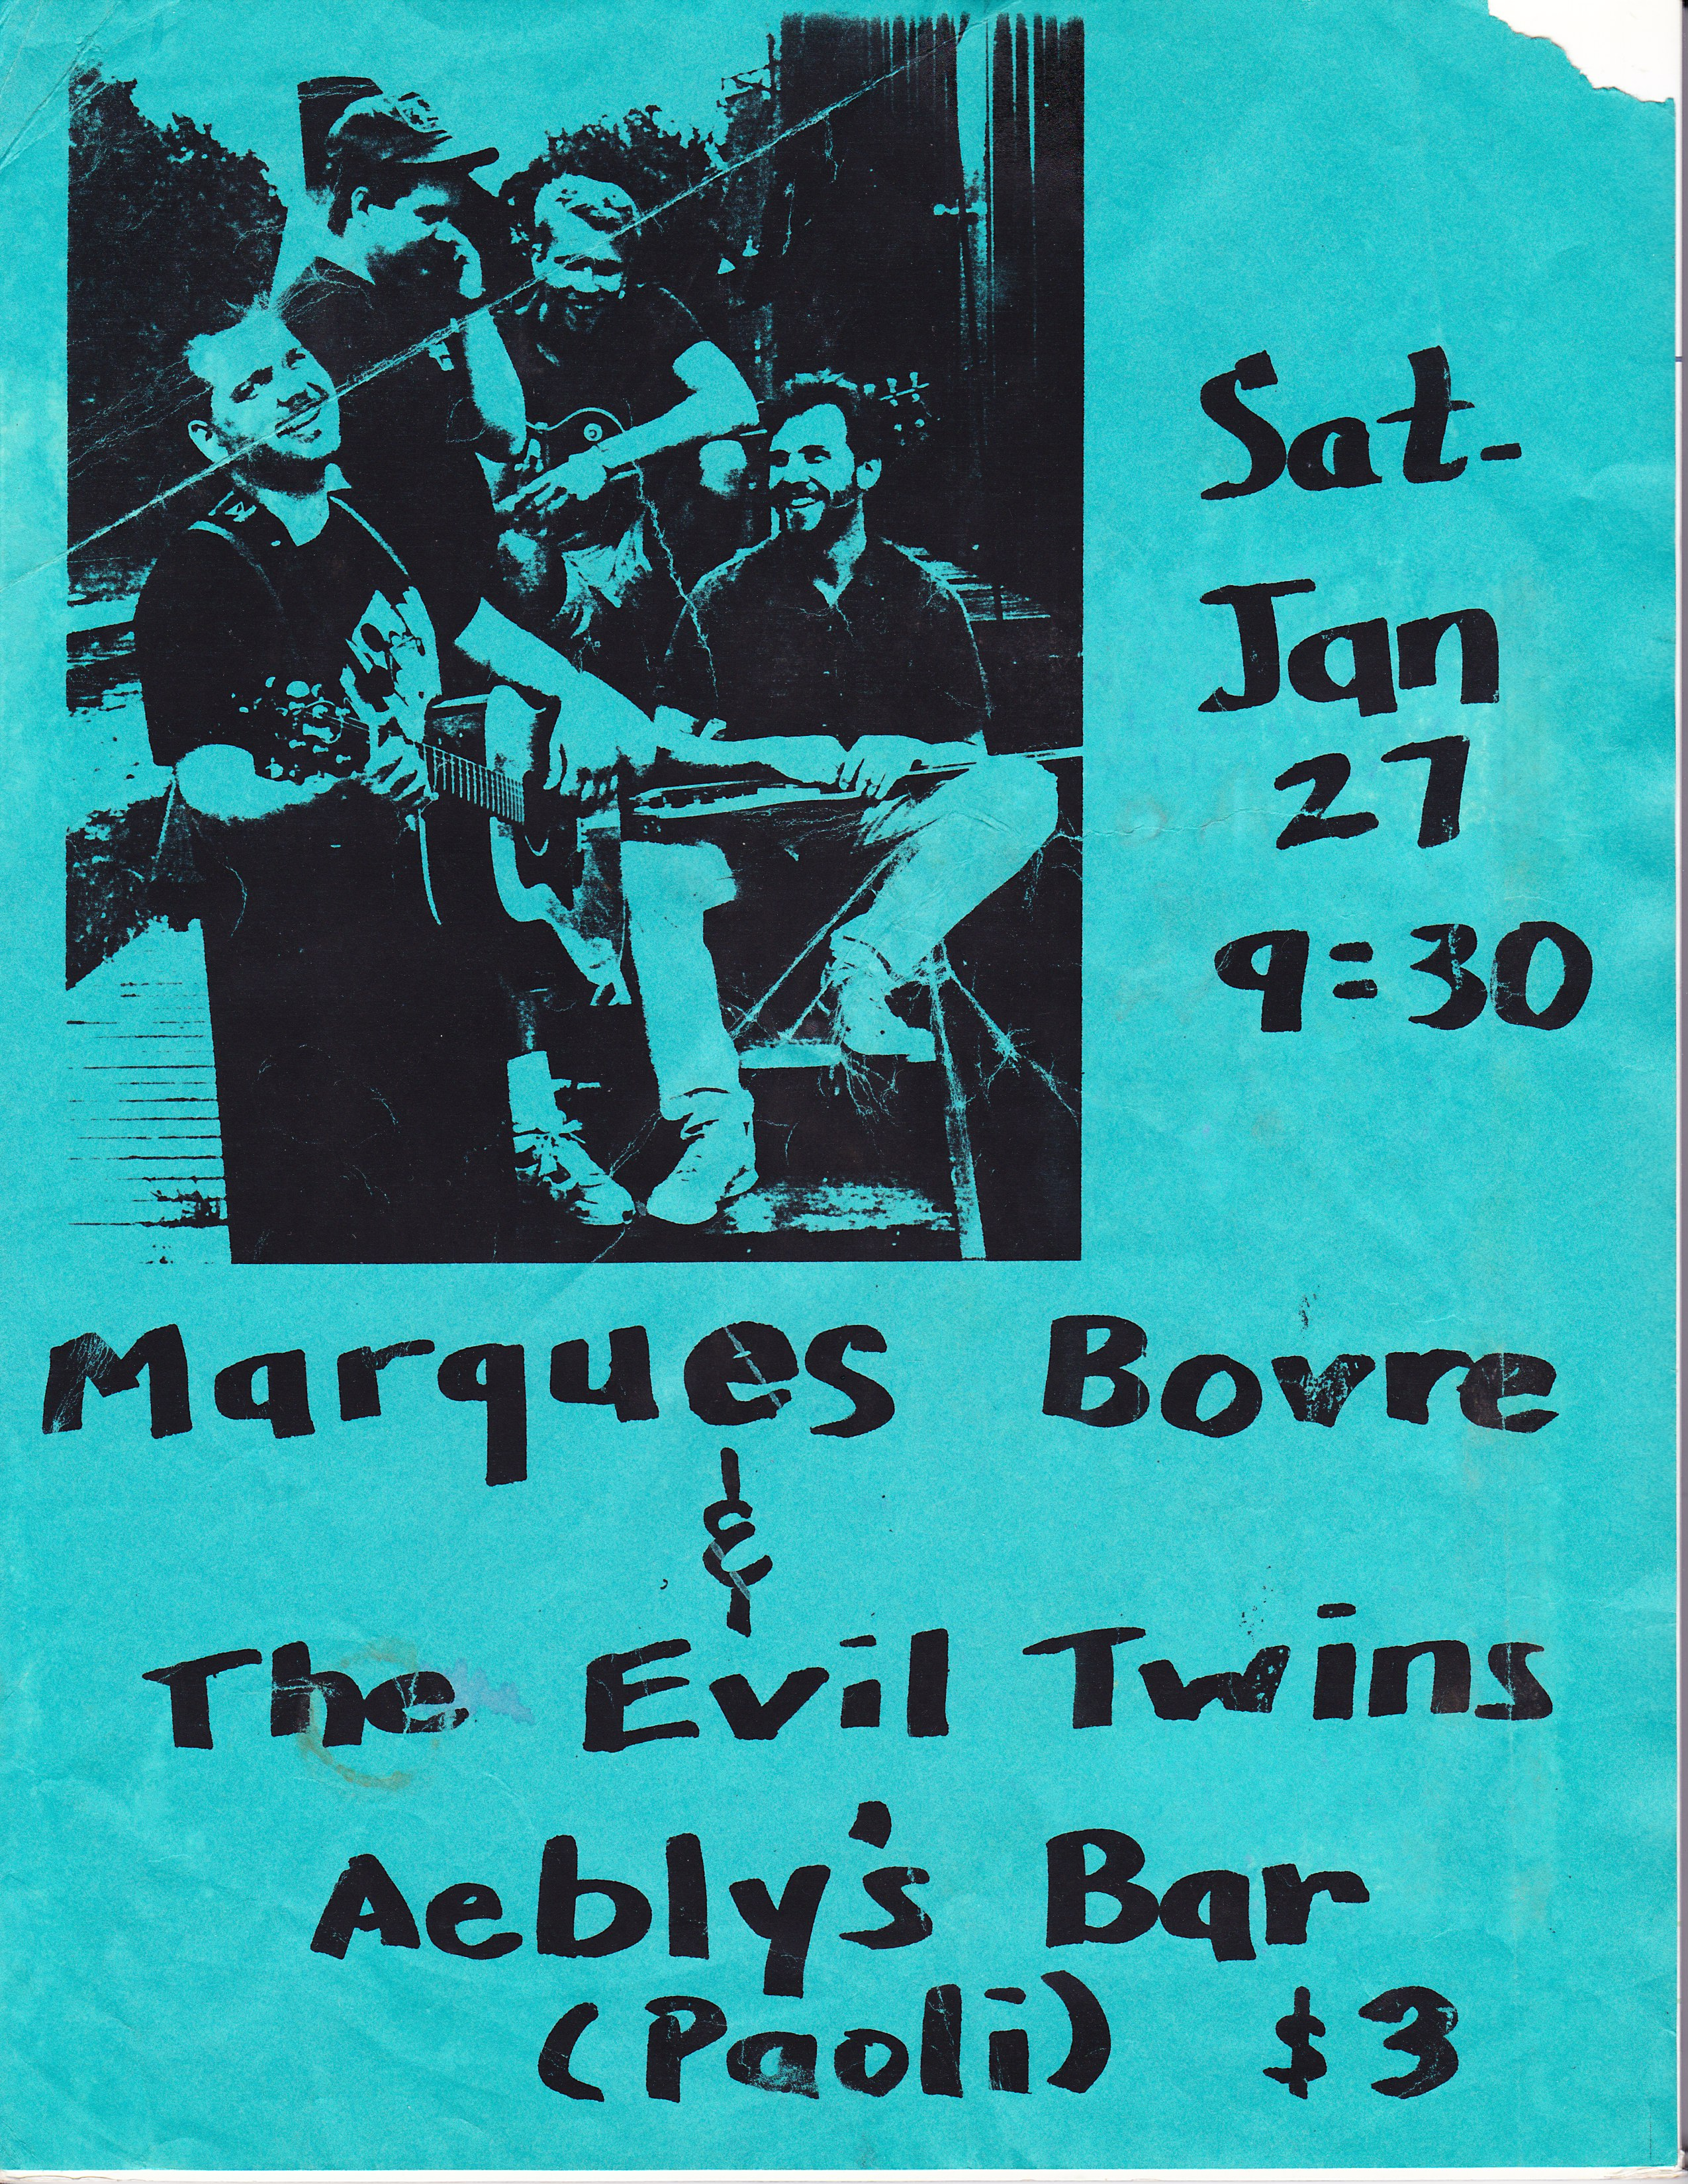 Marques Bovre and the Evil Twins, January 27, 1990